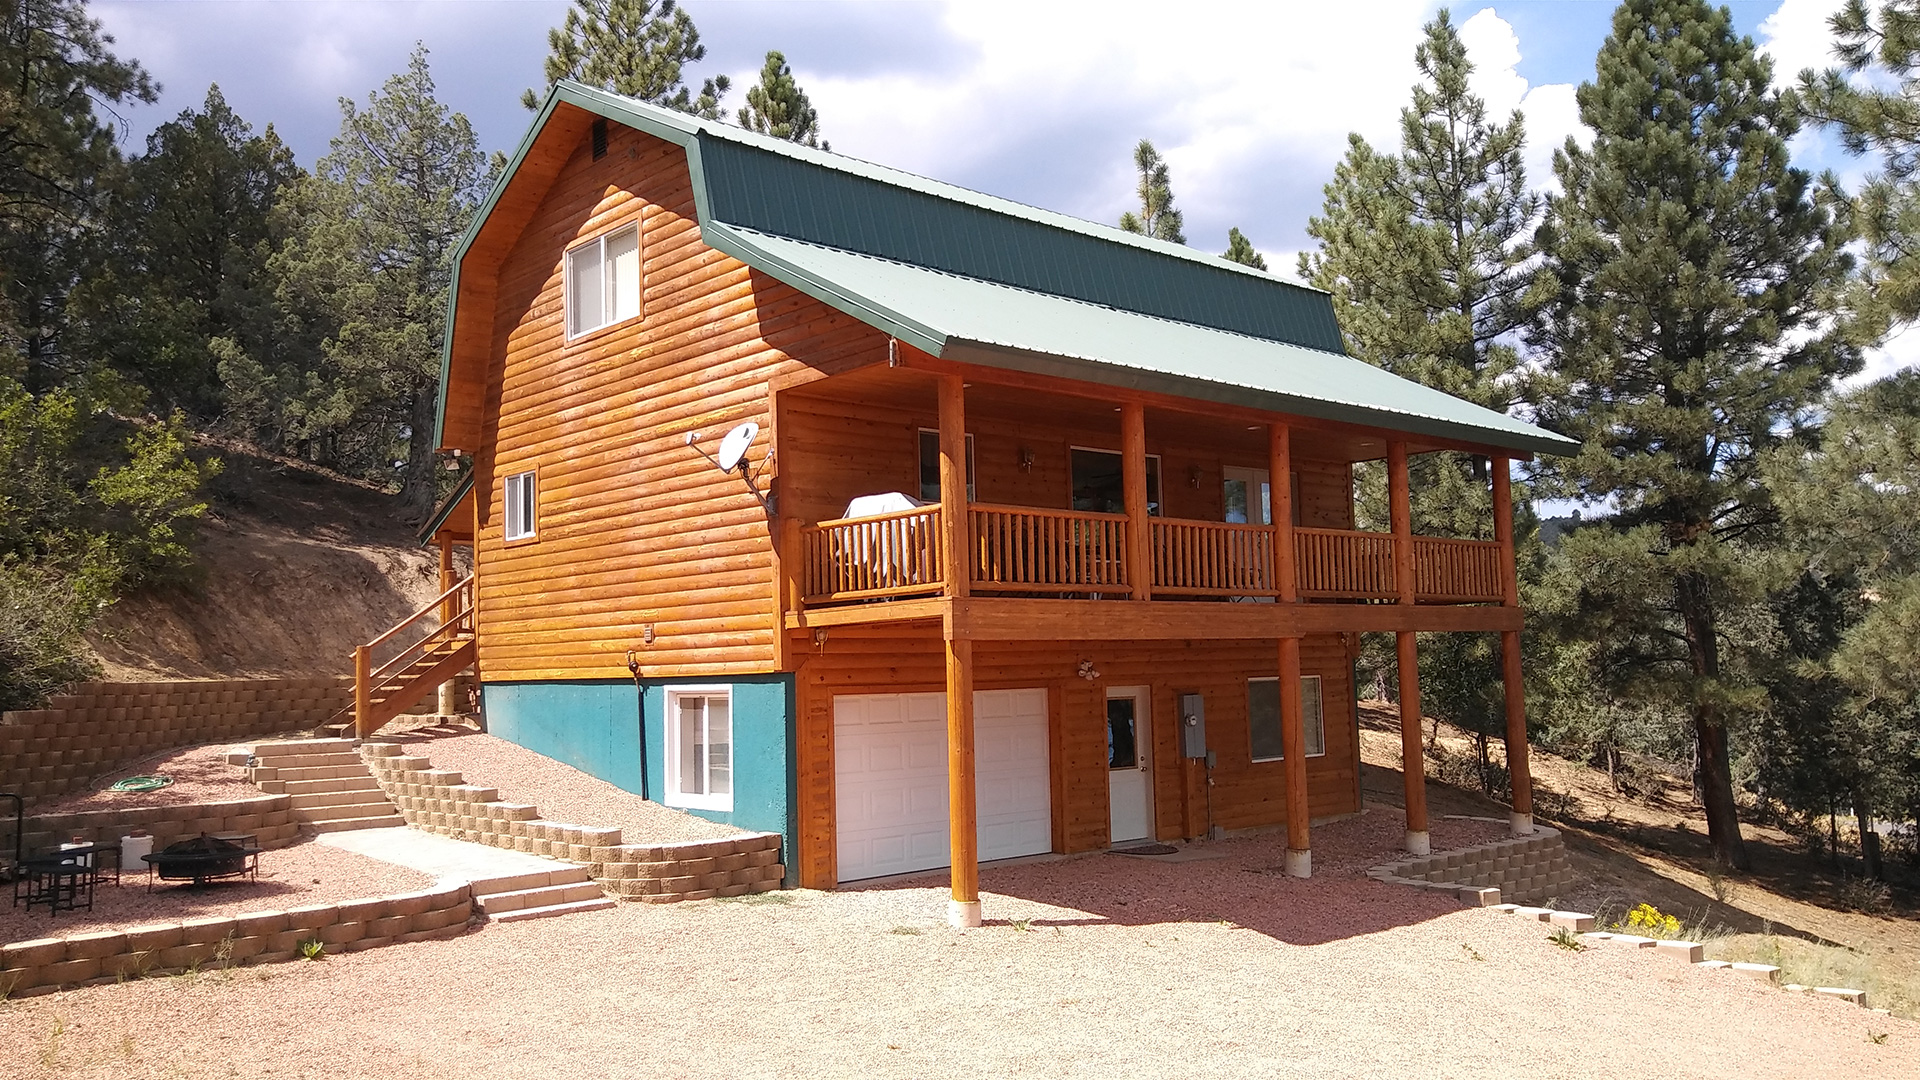 Private vacation rentals in southern utah near bryce for Vacation rentals near zion national park